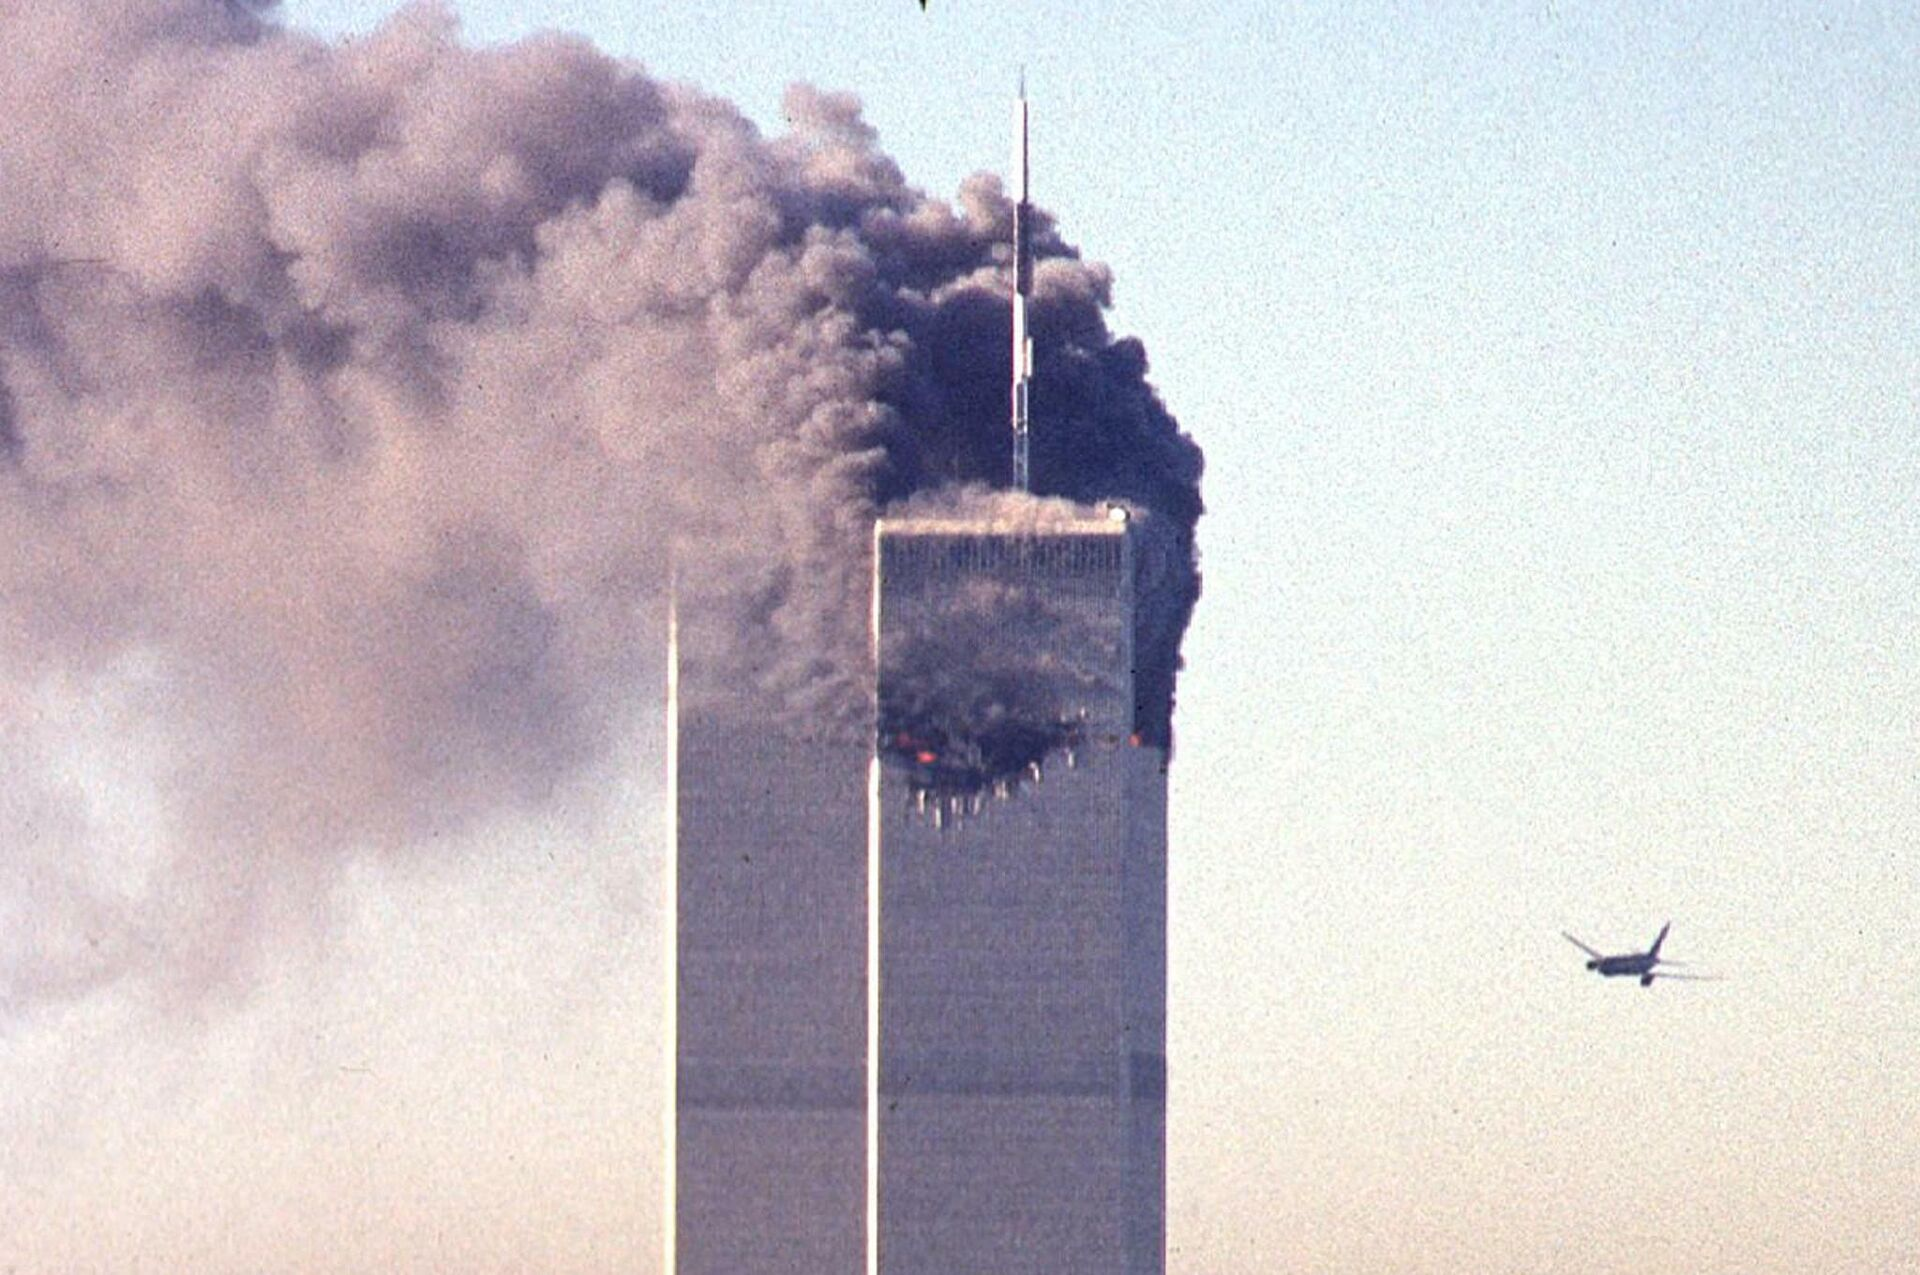 (FILES) In this file photo taken on September 11, 2001, a hijacked commercial aircraft approaches the twin towers of the World Trade Center shortly before crashing into the landmark skyscraper in New York.  - Sputnik International, 1920, 11.09.2021